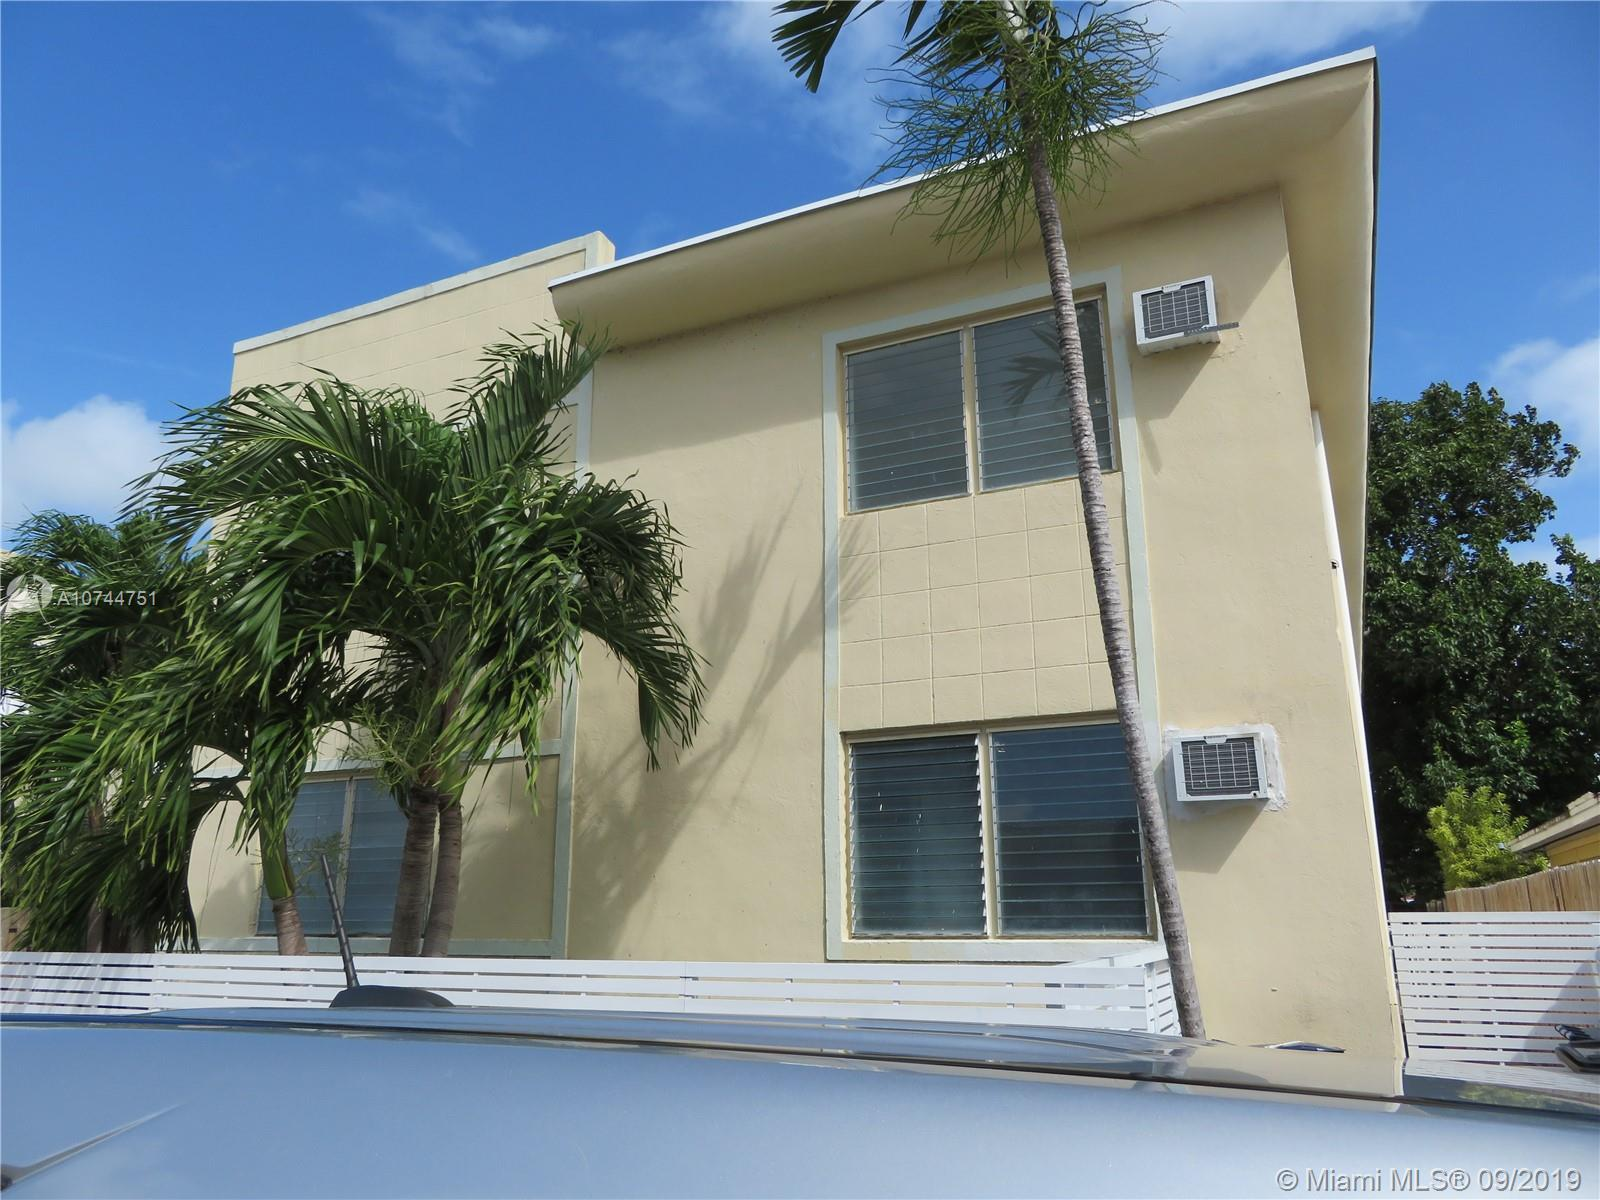 785  81st St #5 For Sale A10744751, FL